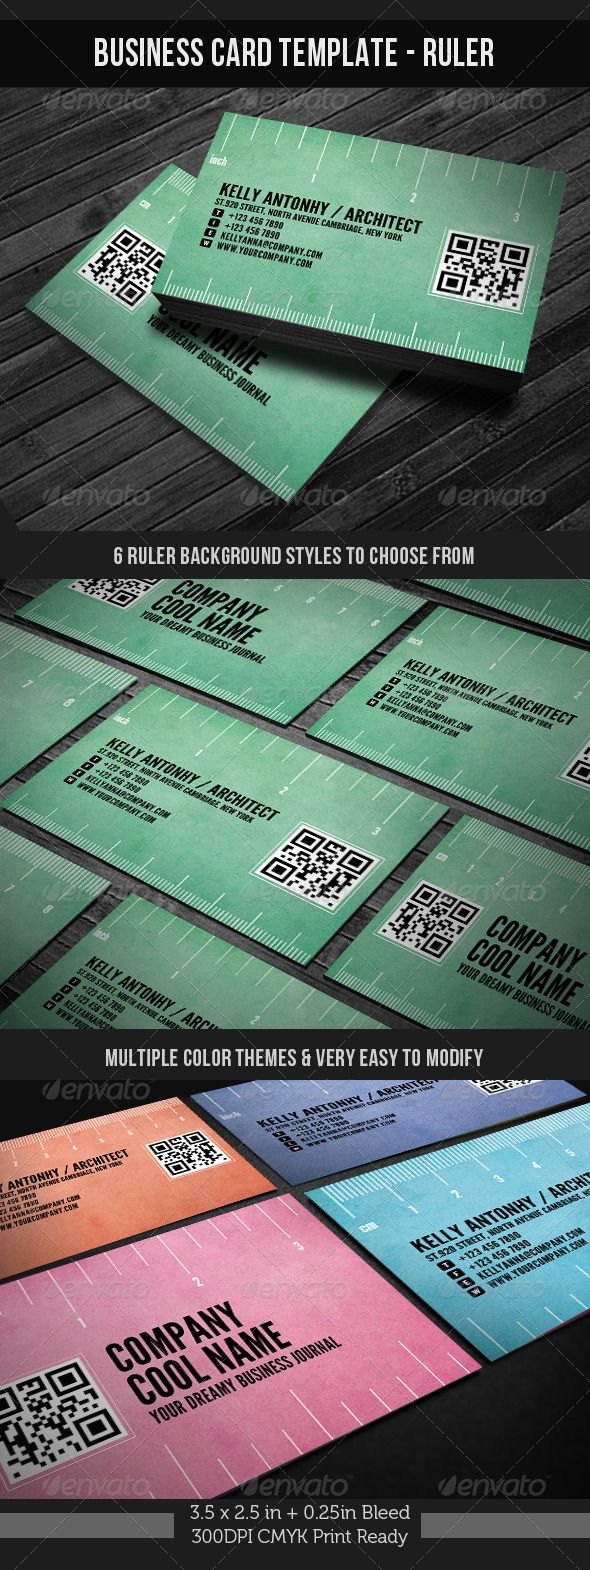 corporate business card template ruler graphicriver corporate business card template ruler with qrquick response code 3525in 025in bleed - Quick Response Code Business Card